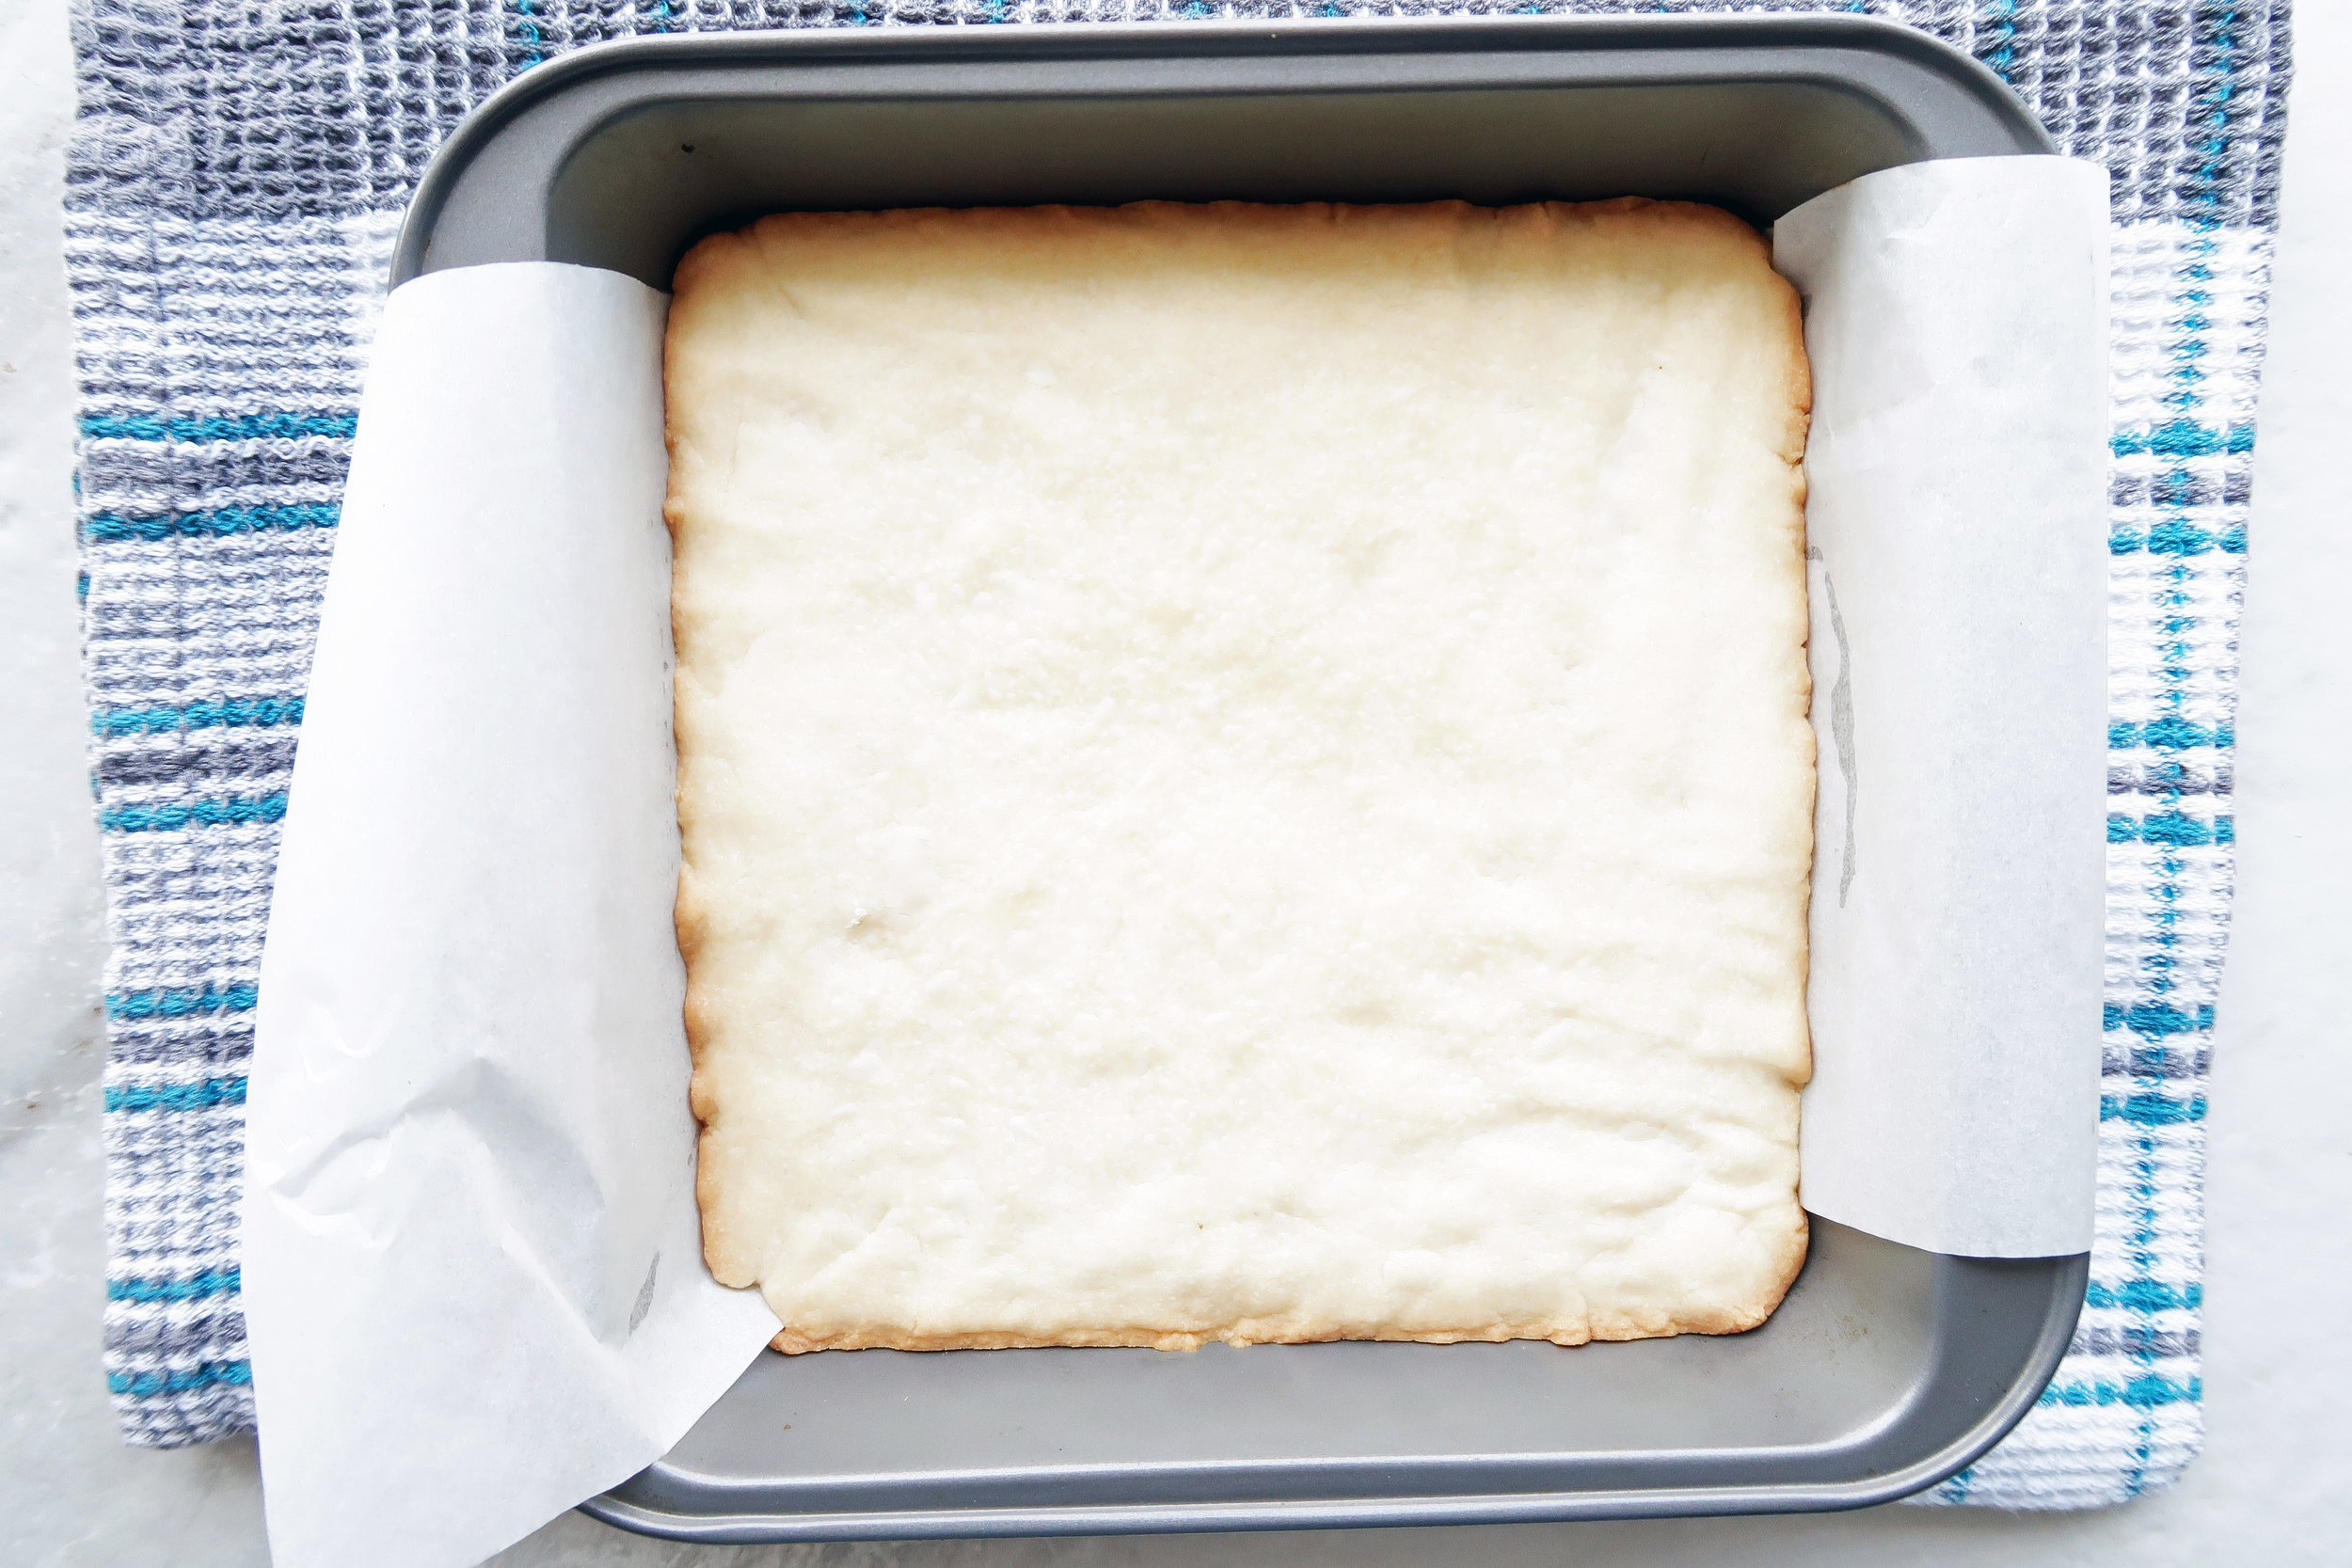 Baked shortbread in a parchment paper-lined square baking pan.